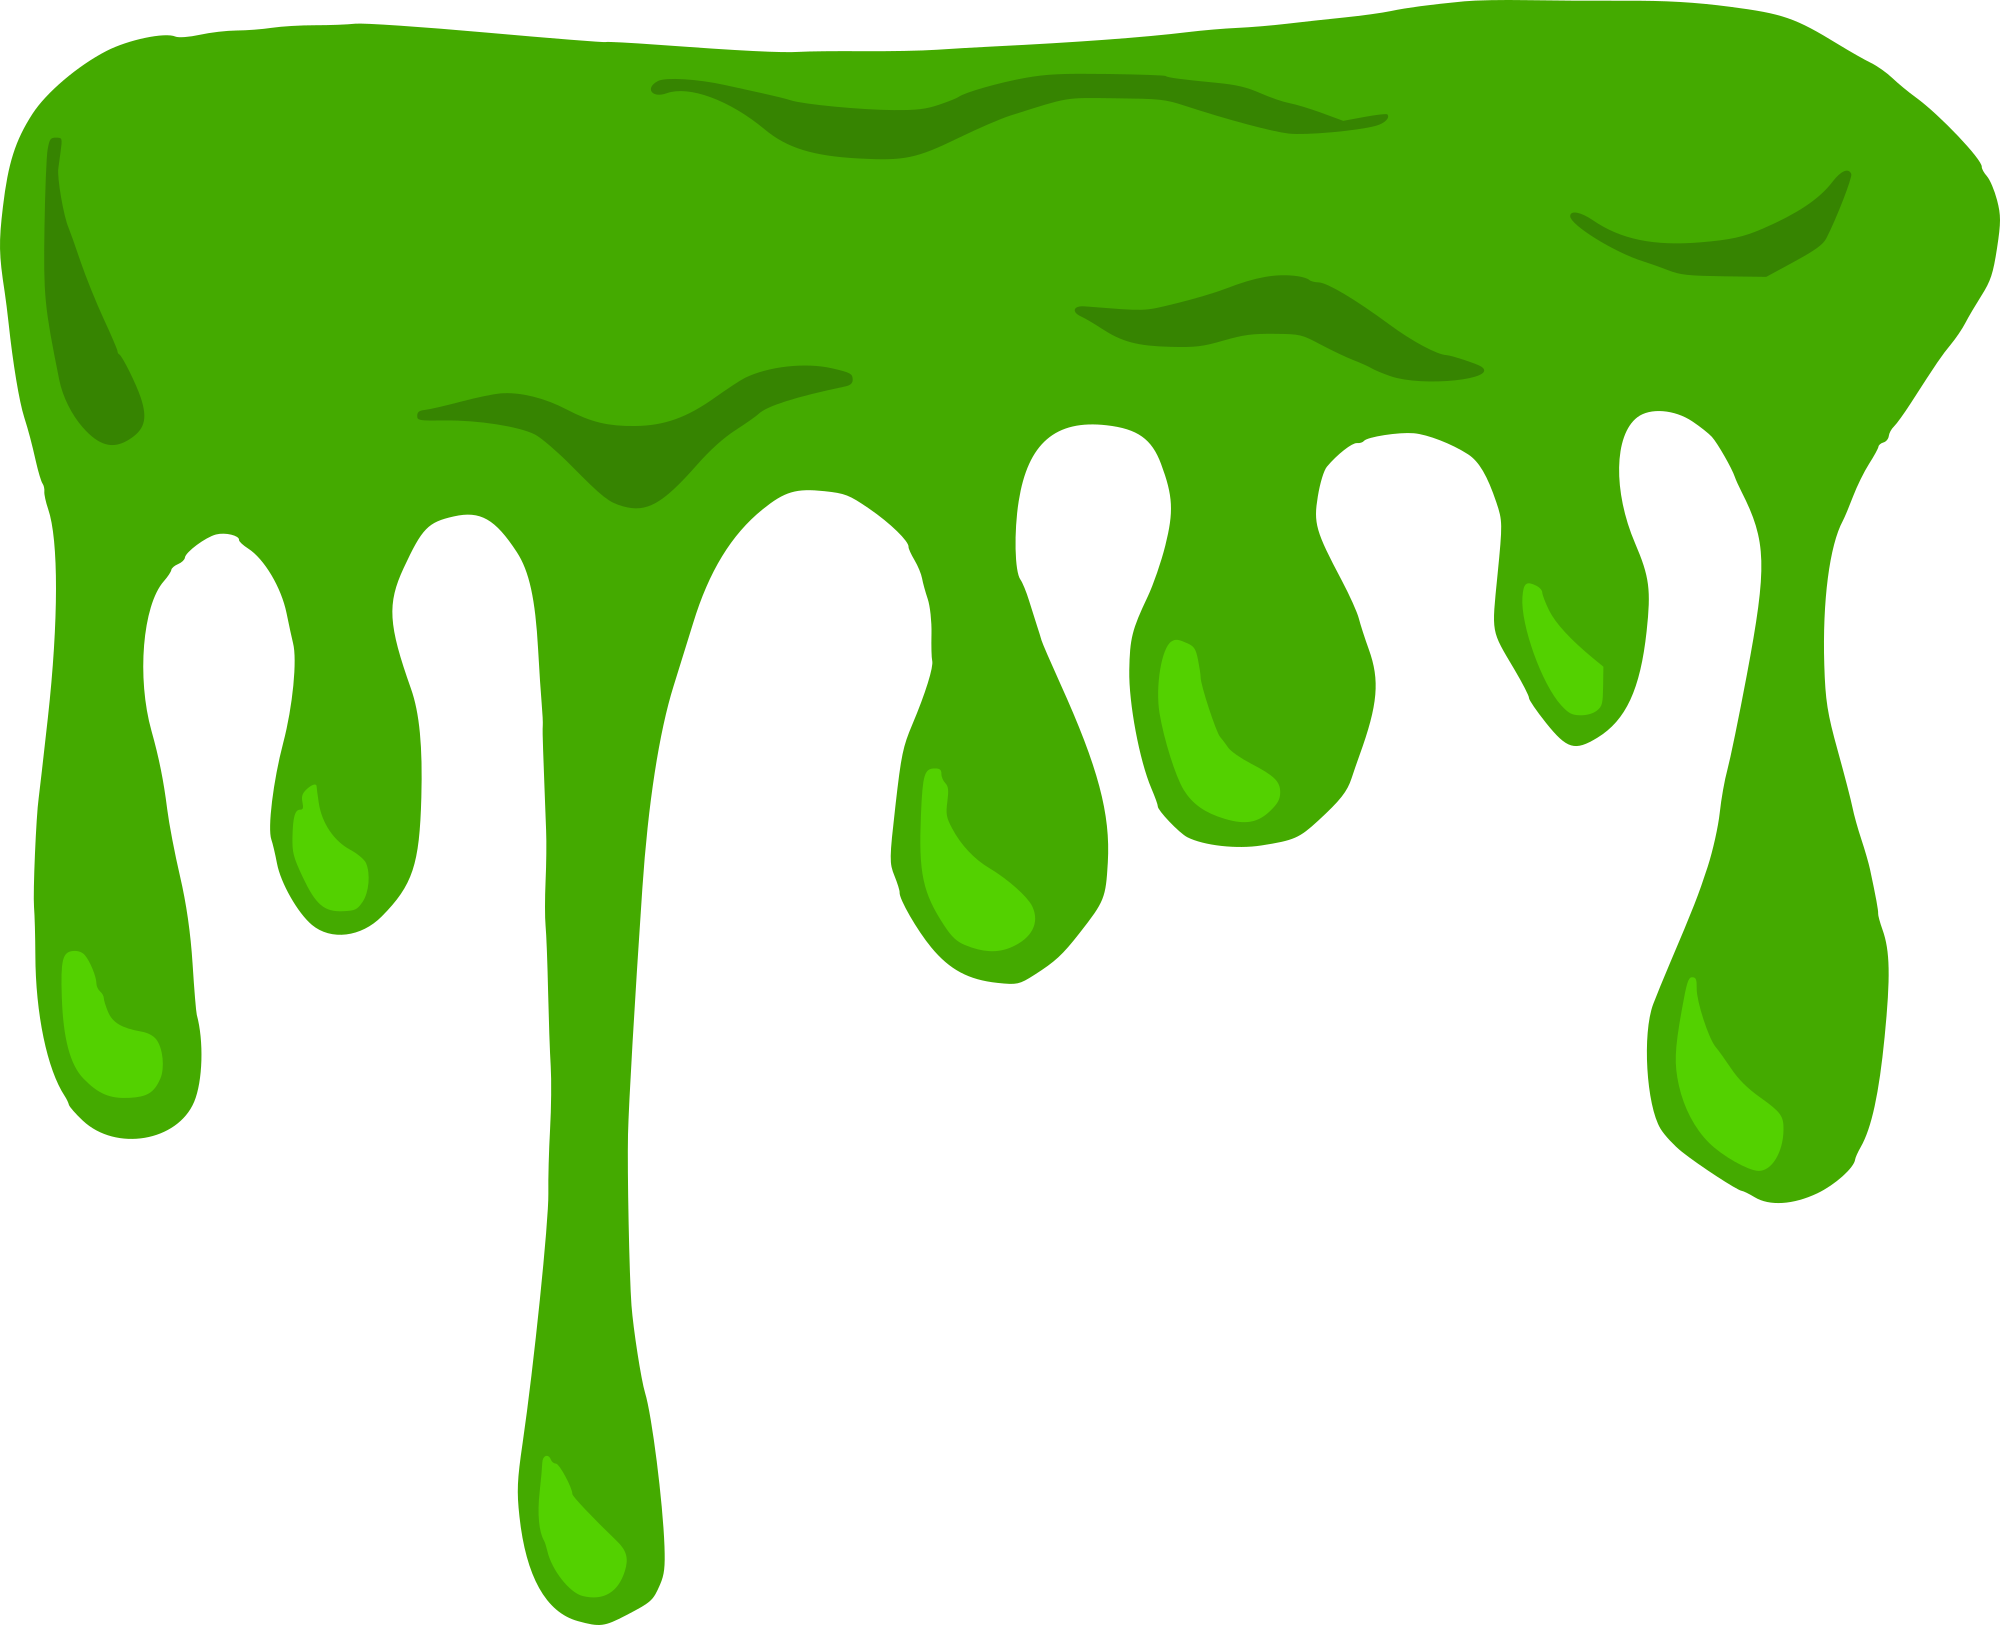 6-cartoon-green-slime-blots-vector-4.png